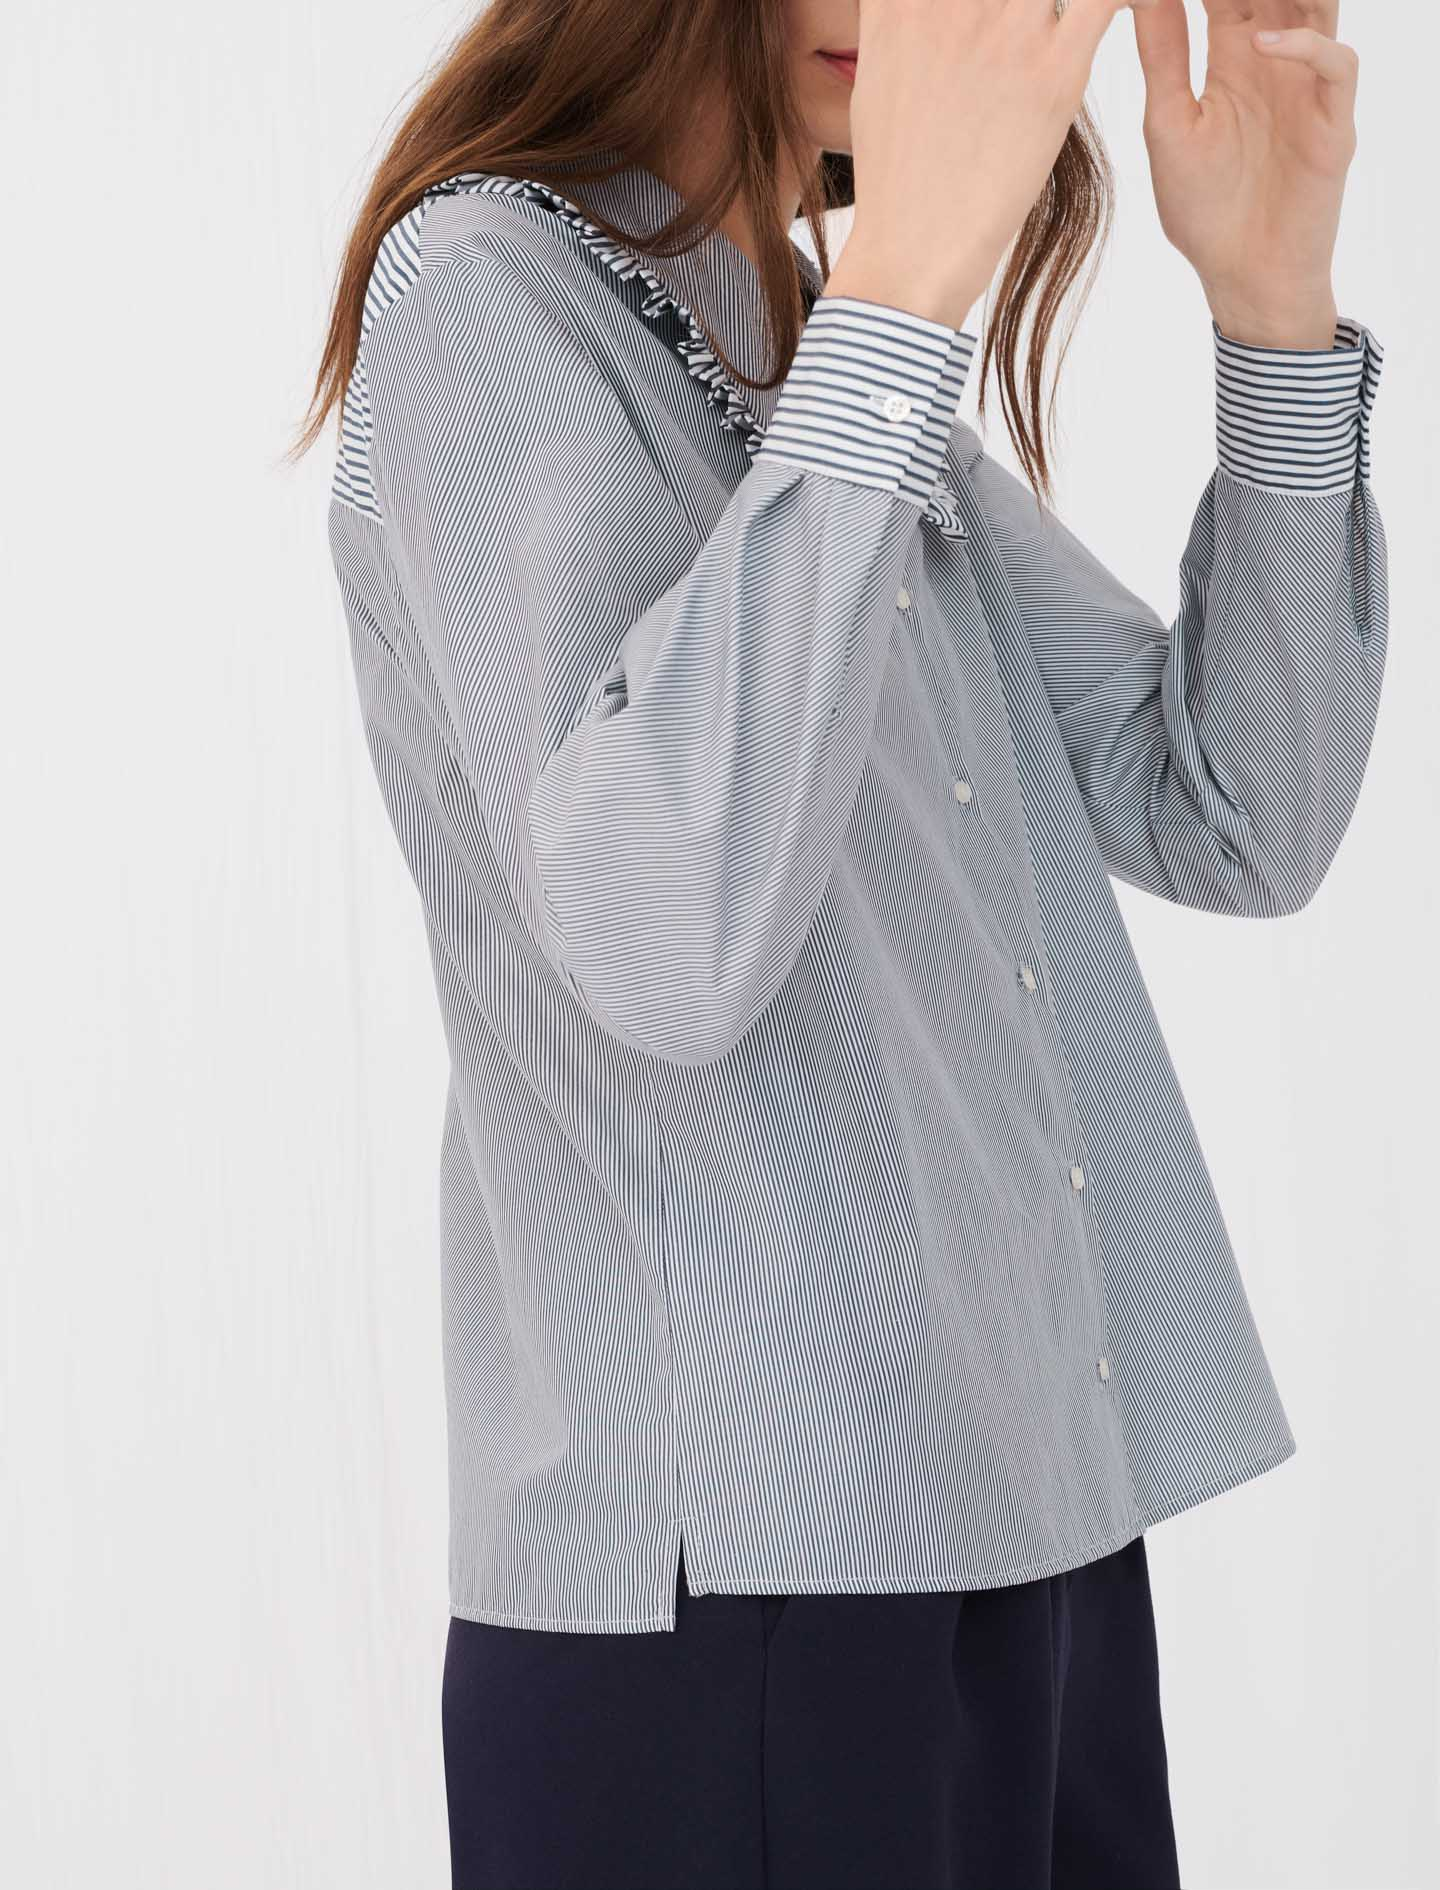 Grey long sleeve shirt with stripes and ruffle collar